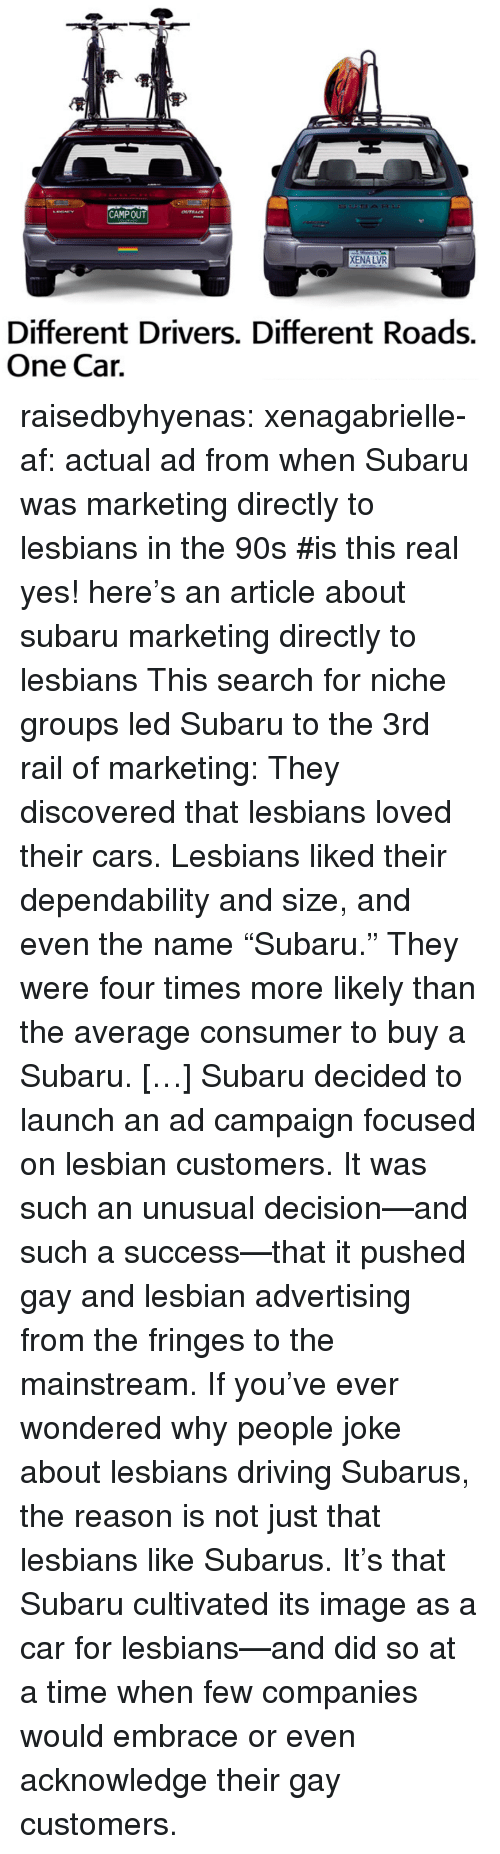 "Af, Cars, and Driving: CAMPOUT  XENA LVR  Different Drivers. Different Roads.  One Cair. raisedbyhyenas:  xenagabrielle-af: actual ad from when Subaru was marketing directly to lesbians in the 90s   #is this real     yes! here's an article about subaru marketing directly to lesbians    This search for niche groups led Subaru to the 3rd rail of marketing: They discovered that lesbians loved their cars. Lesbians liked their dependability and size, and even the name ""Subaru."" They were four times more likely than the average consumer to buy a Subaru. […] Subaru decided to launch an ad campaign focused on lesbian customers. It was such an unusual decision—and such a success—that it pushed gay and lesbian advertising from the fringes to the mainstream. If you've ever wondered why people joke about lesbians driving Subarus, the reason is not just that lesbians like Subarus. It's that Subaru cultivated its image as a car for lesbians—and did so at a time when few companies would embrace or even acknowledge their gay customers."